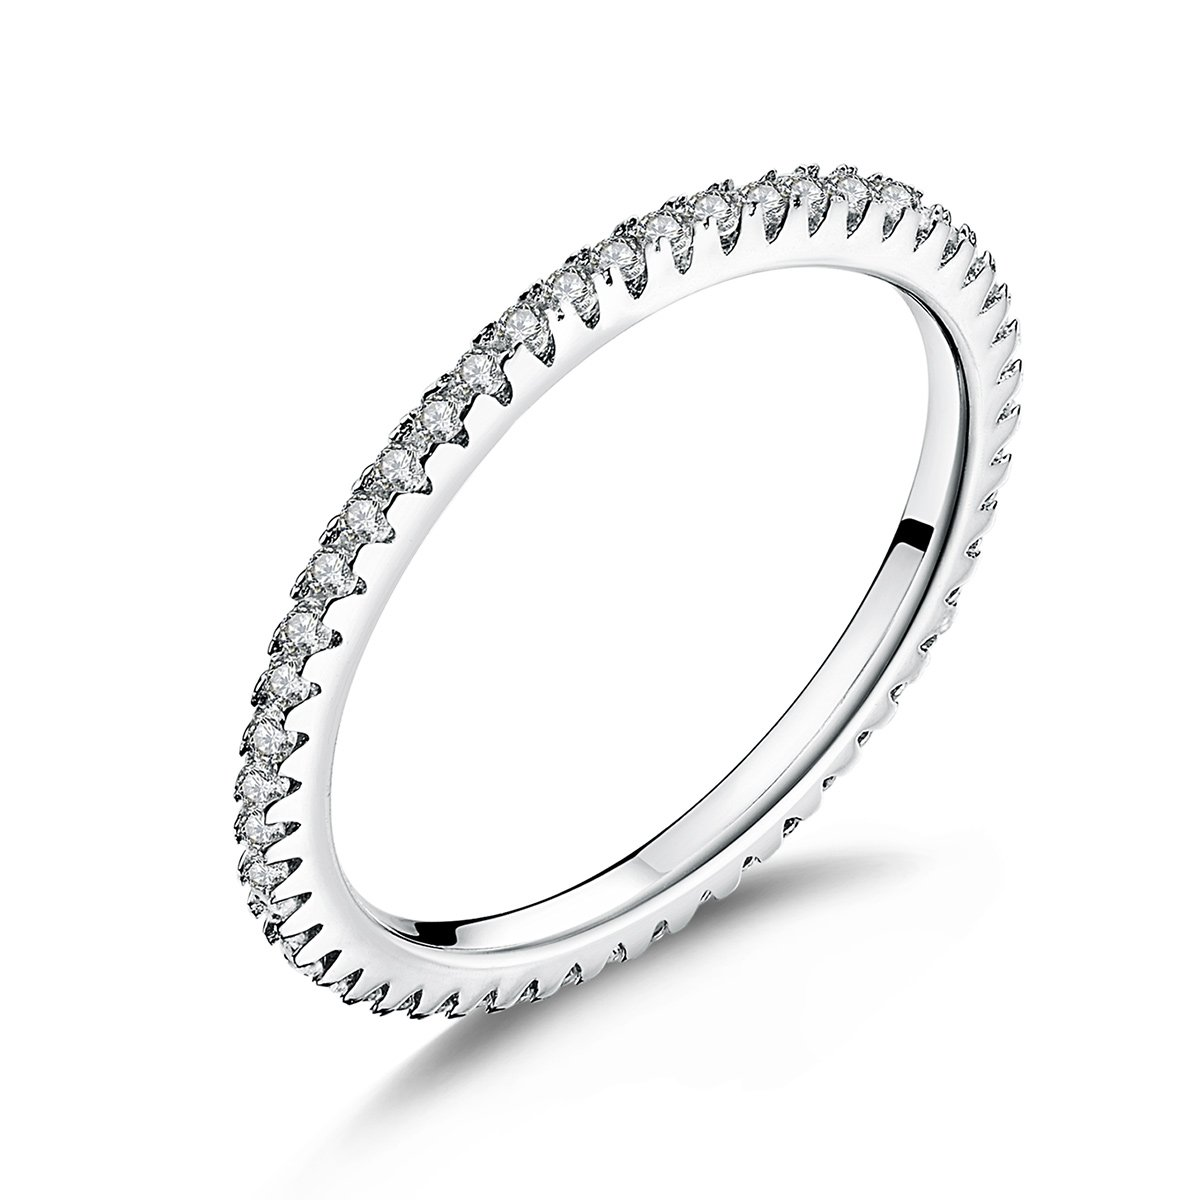 WOSTU 1.5MM Thin Band Eternity Rings Platinum Plated 925 Sterling Silver Cubic Zirconia Engagement Rings (9)